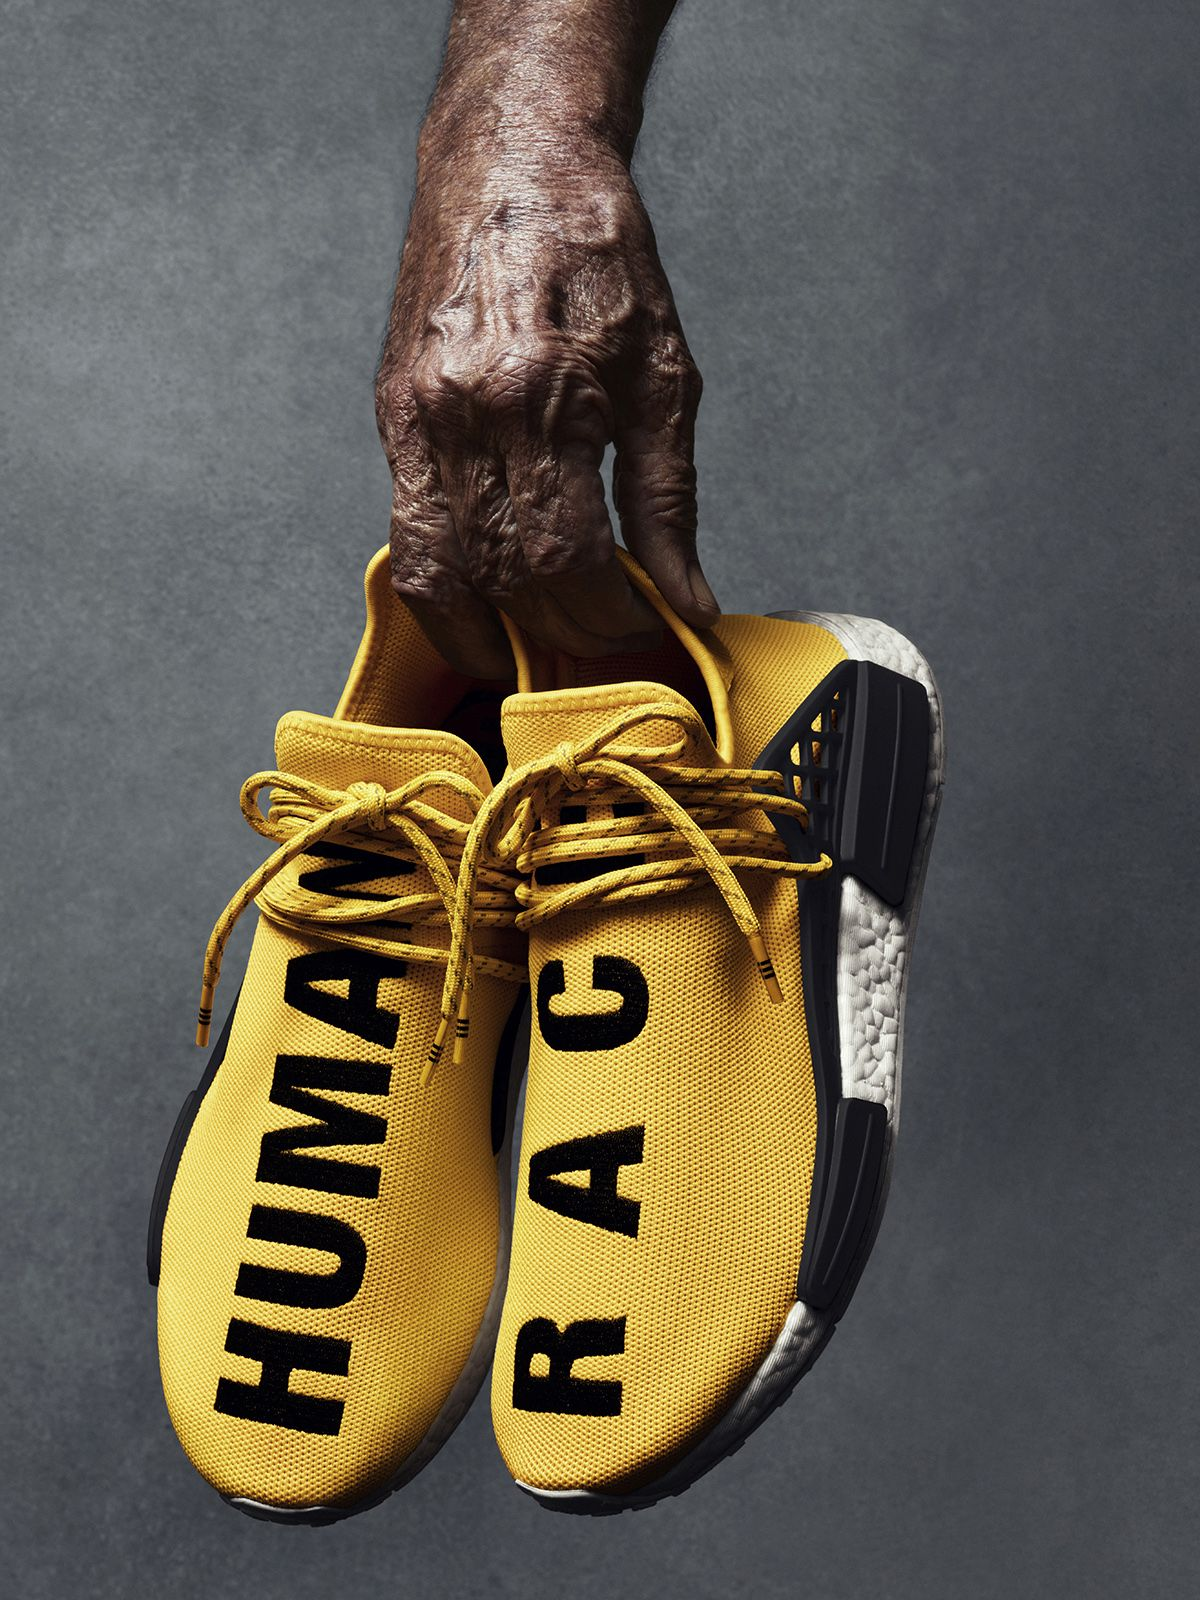 Pharrell Spotted In New Pharrell x adidas NMD Human Race